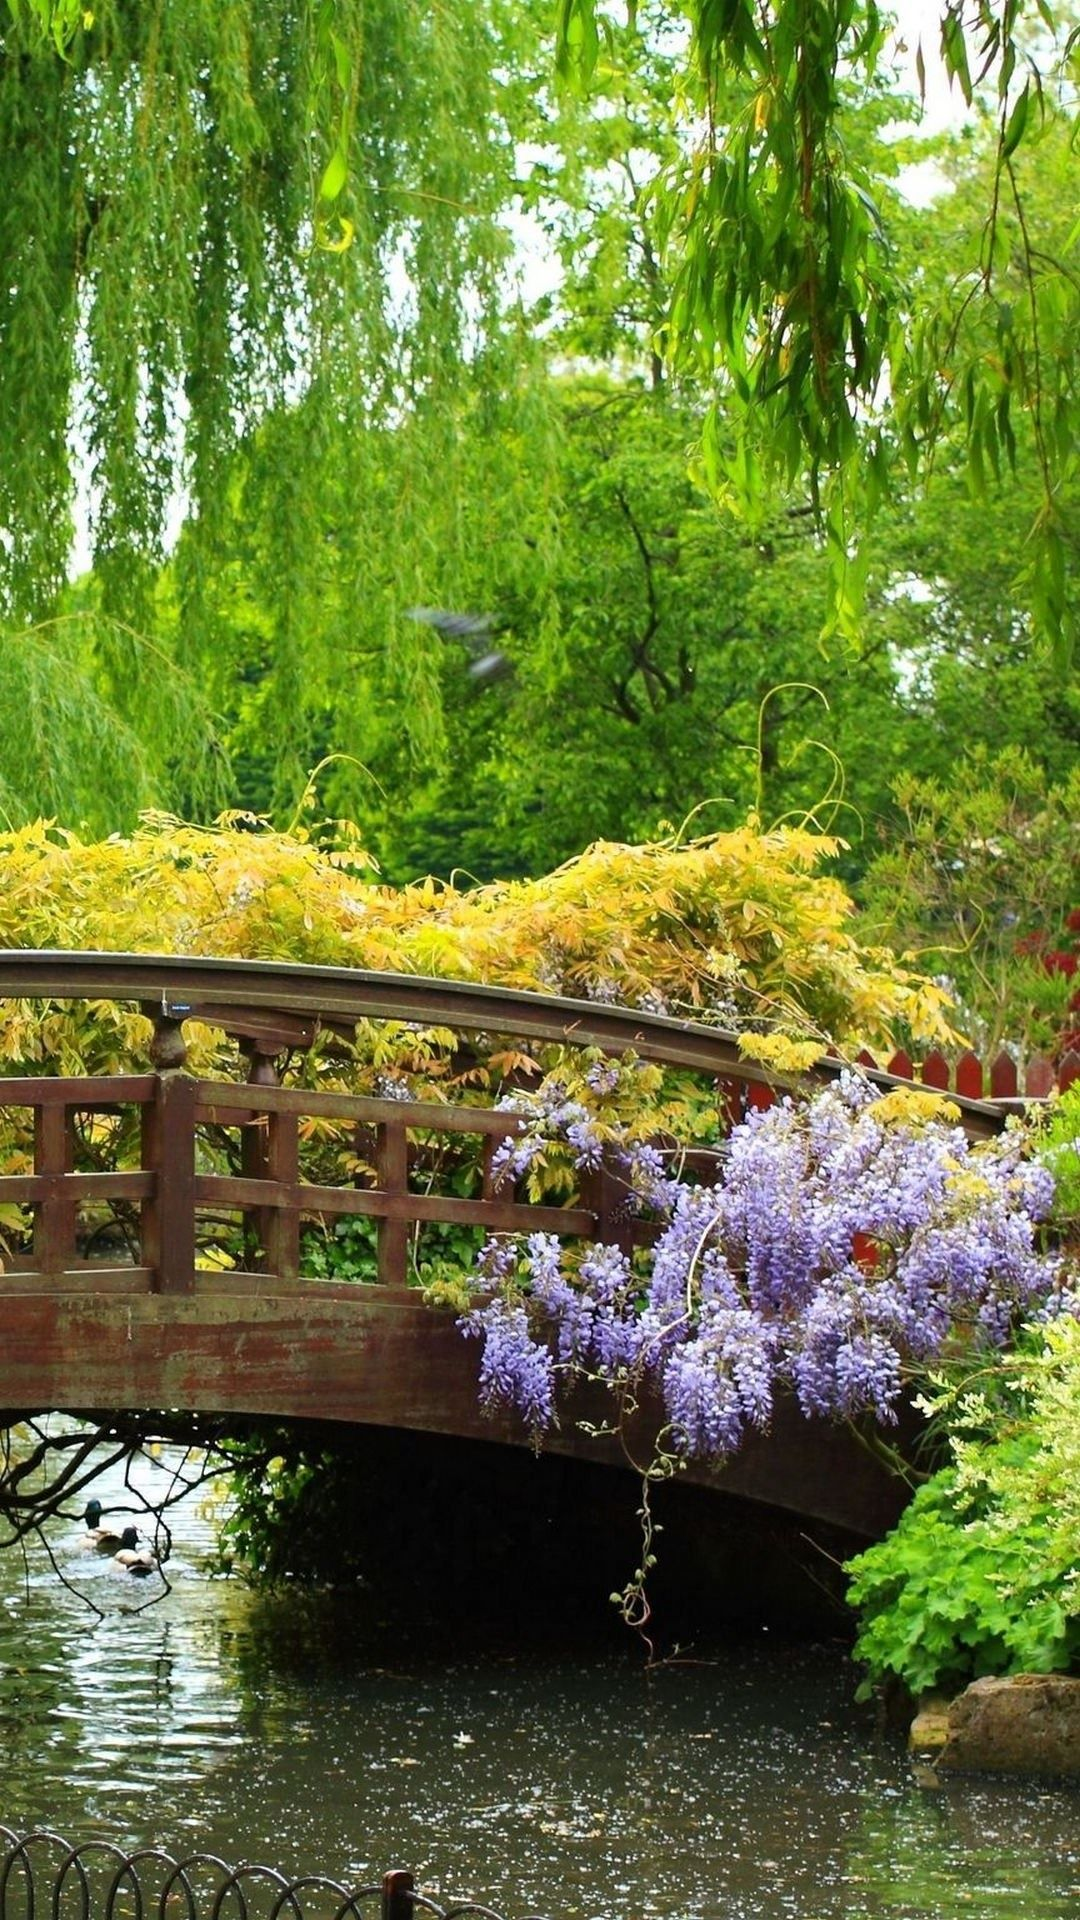 wooden bridge blue flowers green trees iphone 6 plus hd wallpaper